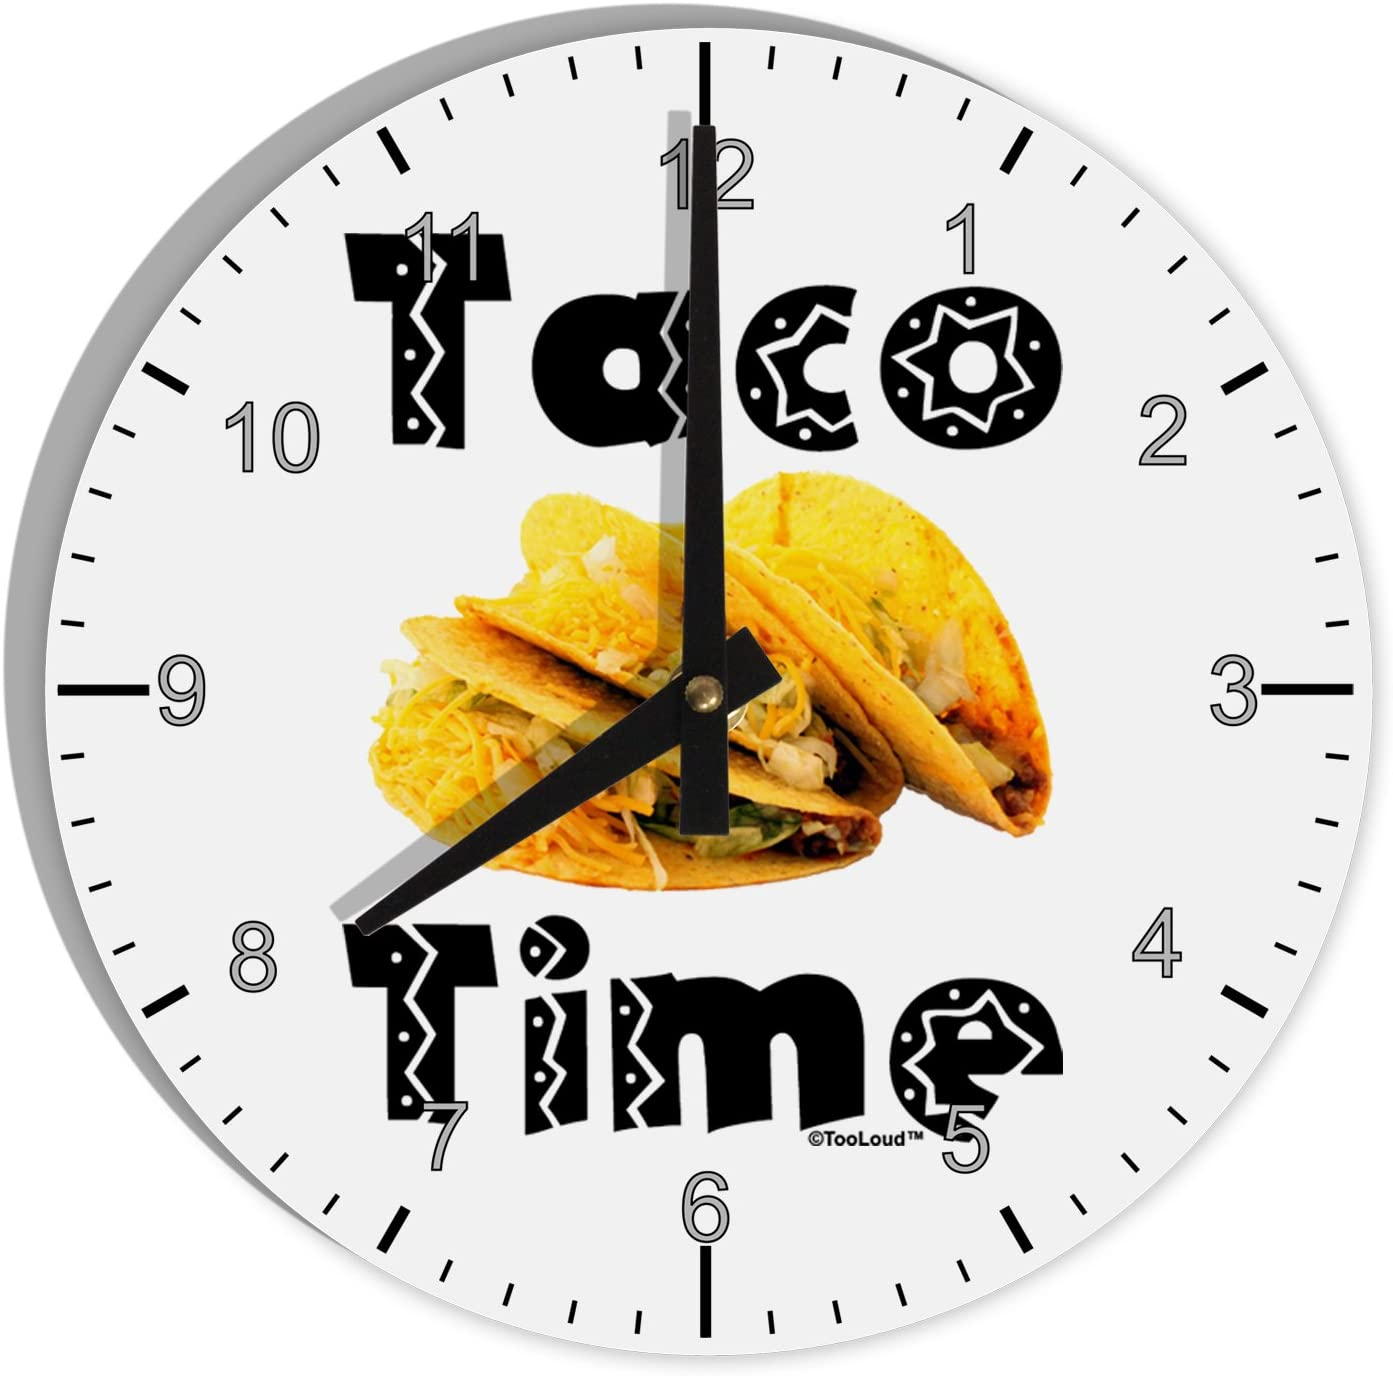 TOOLOUD Taco Time - Mexican Food Design 8